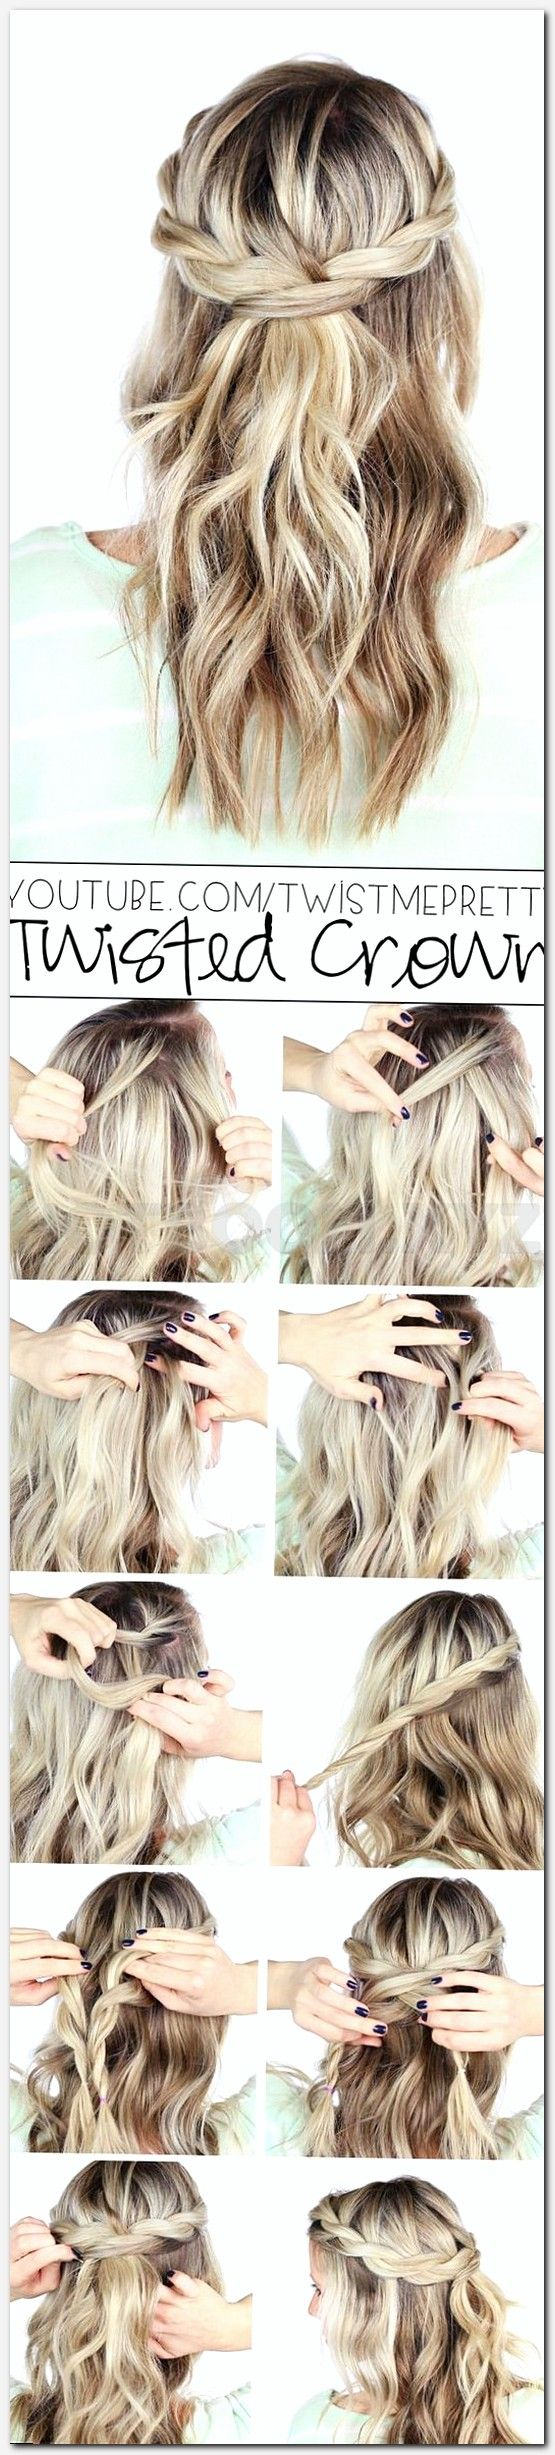 lots of layers haircut for medium hair, short chic hairstyles 2017, ponytails for girls, medium short bob hairstyles, male trendy hairstyles, emo haircut, top haircuts 2017, pretty hairstyles for curly hair, cute summer haircuts, cool shoulder length haircuts, curly hairdos for short hair, step by step hairstyles for short hair, short length haircuts, hair up ideas for short hair, how to do short hairstyles, ladies short haircuts very short